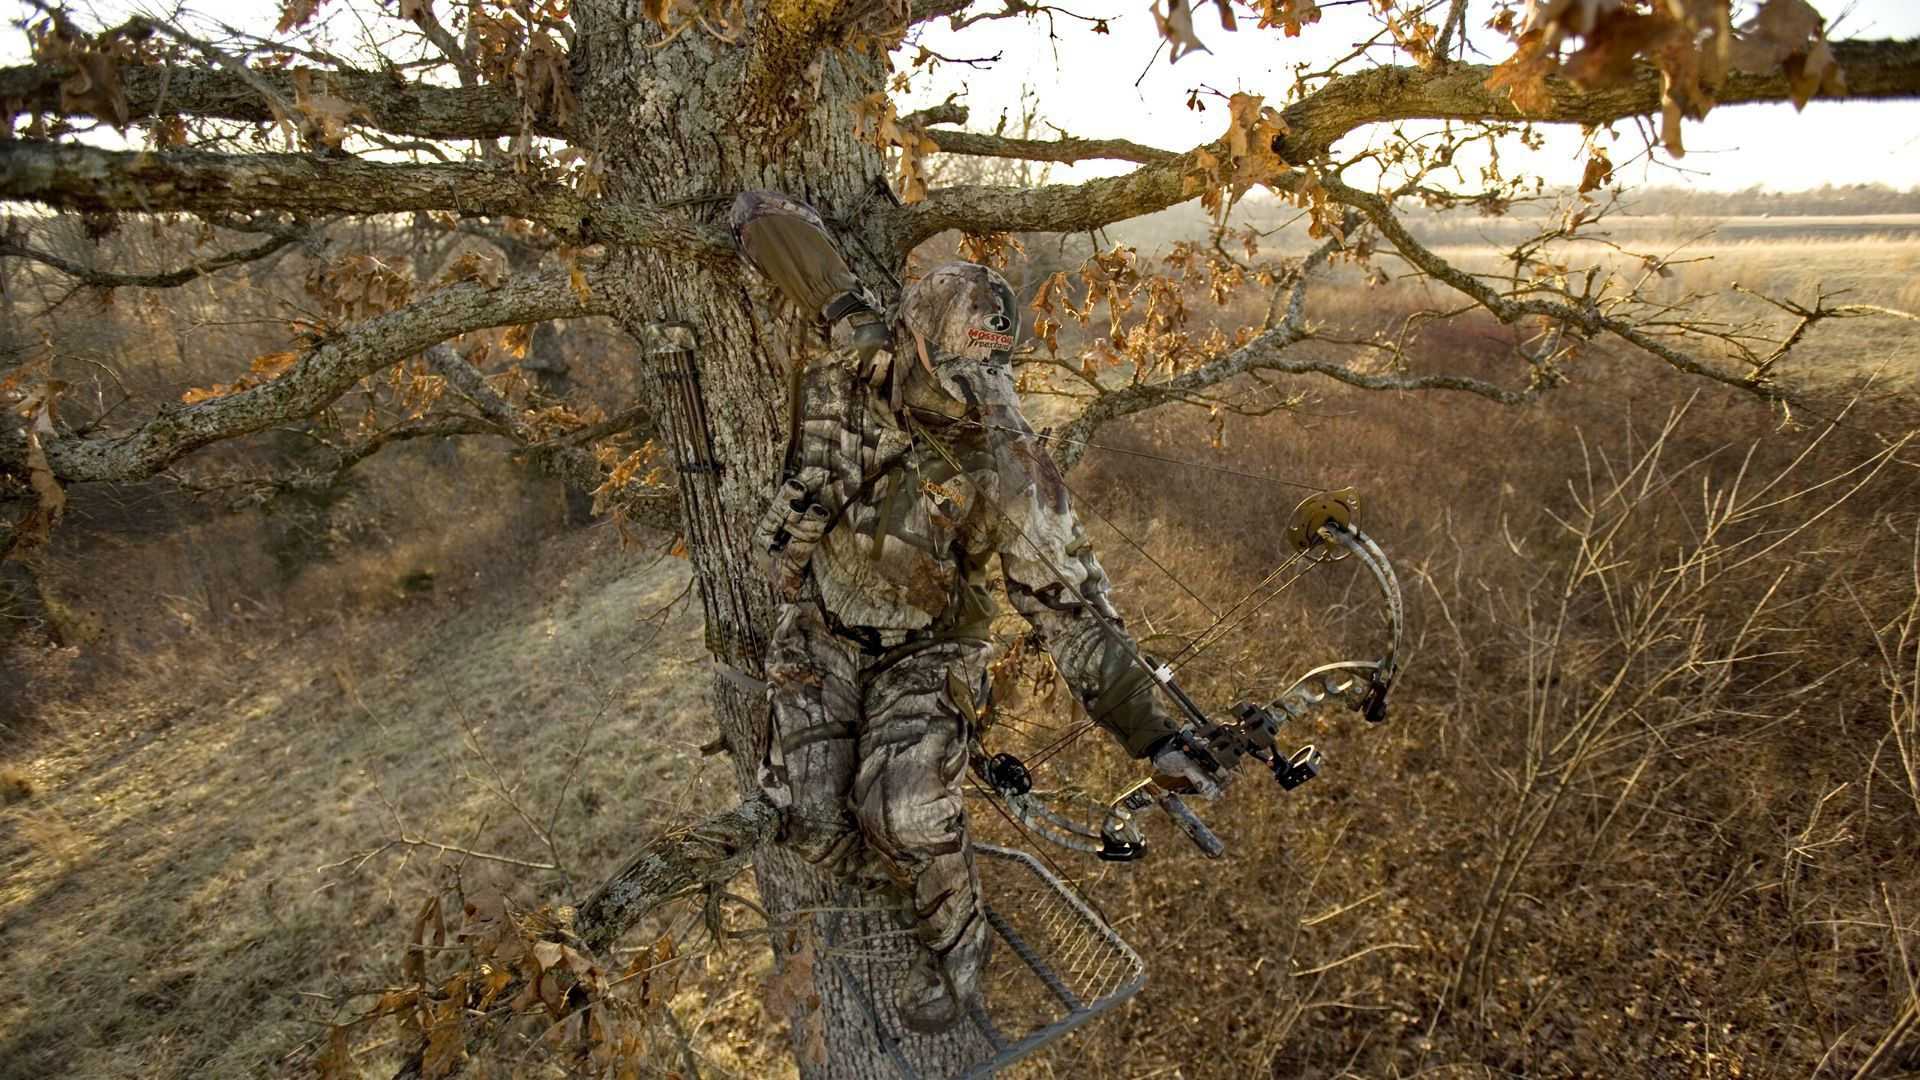 Bow Hunting Wallpaper Mossy Oak Camo Hunting Wallpaper